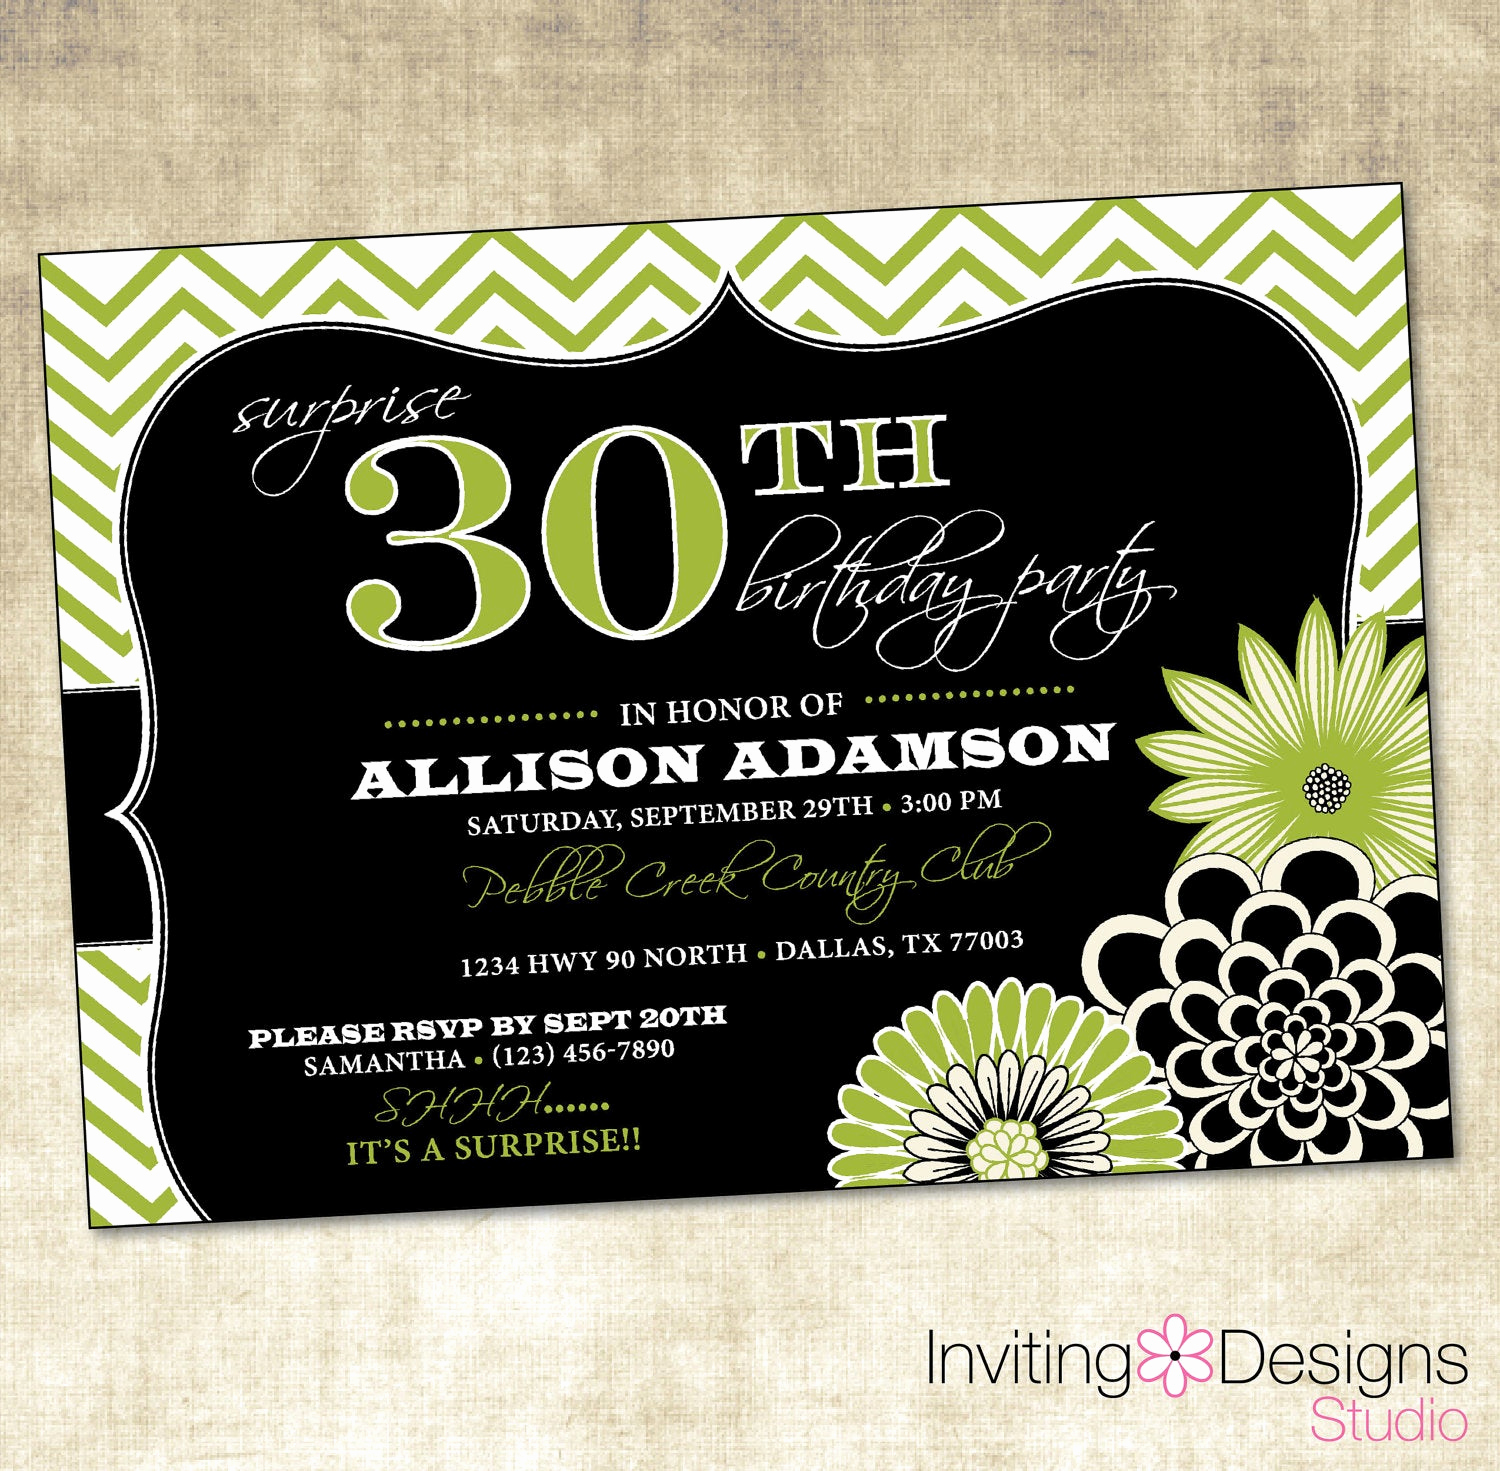 25th Birthday Invitation Wording New Birthday Party Invitation 20th 25th 30th by